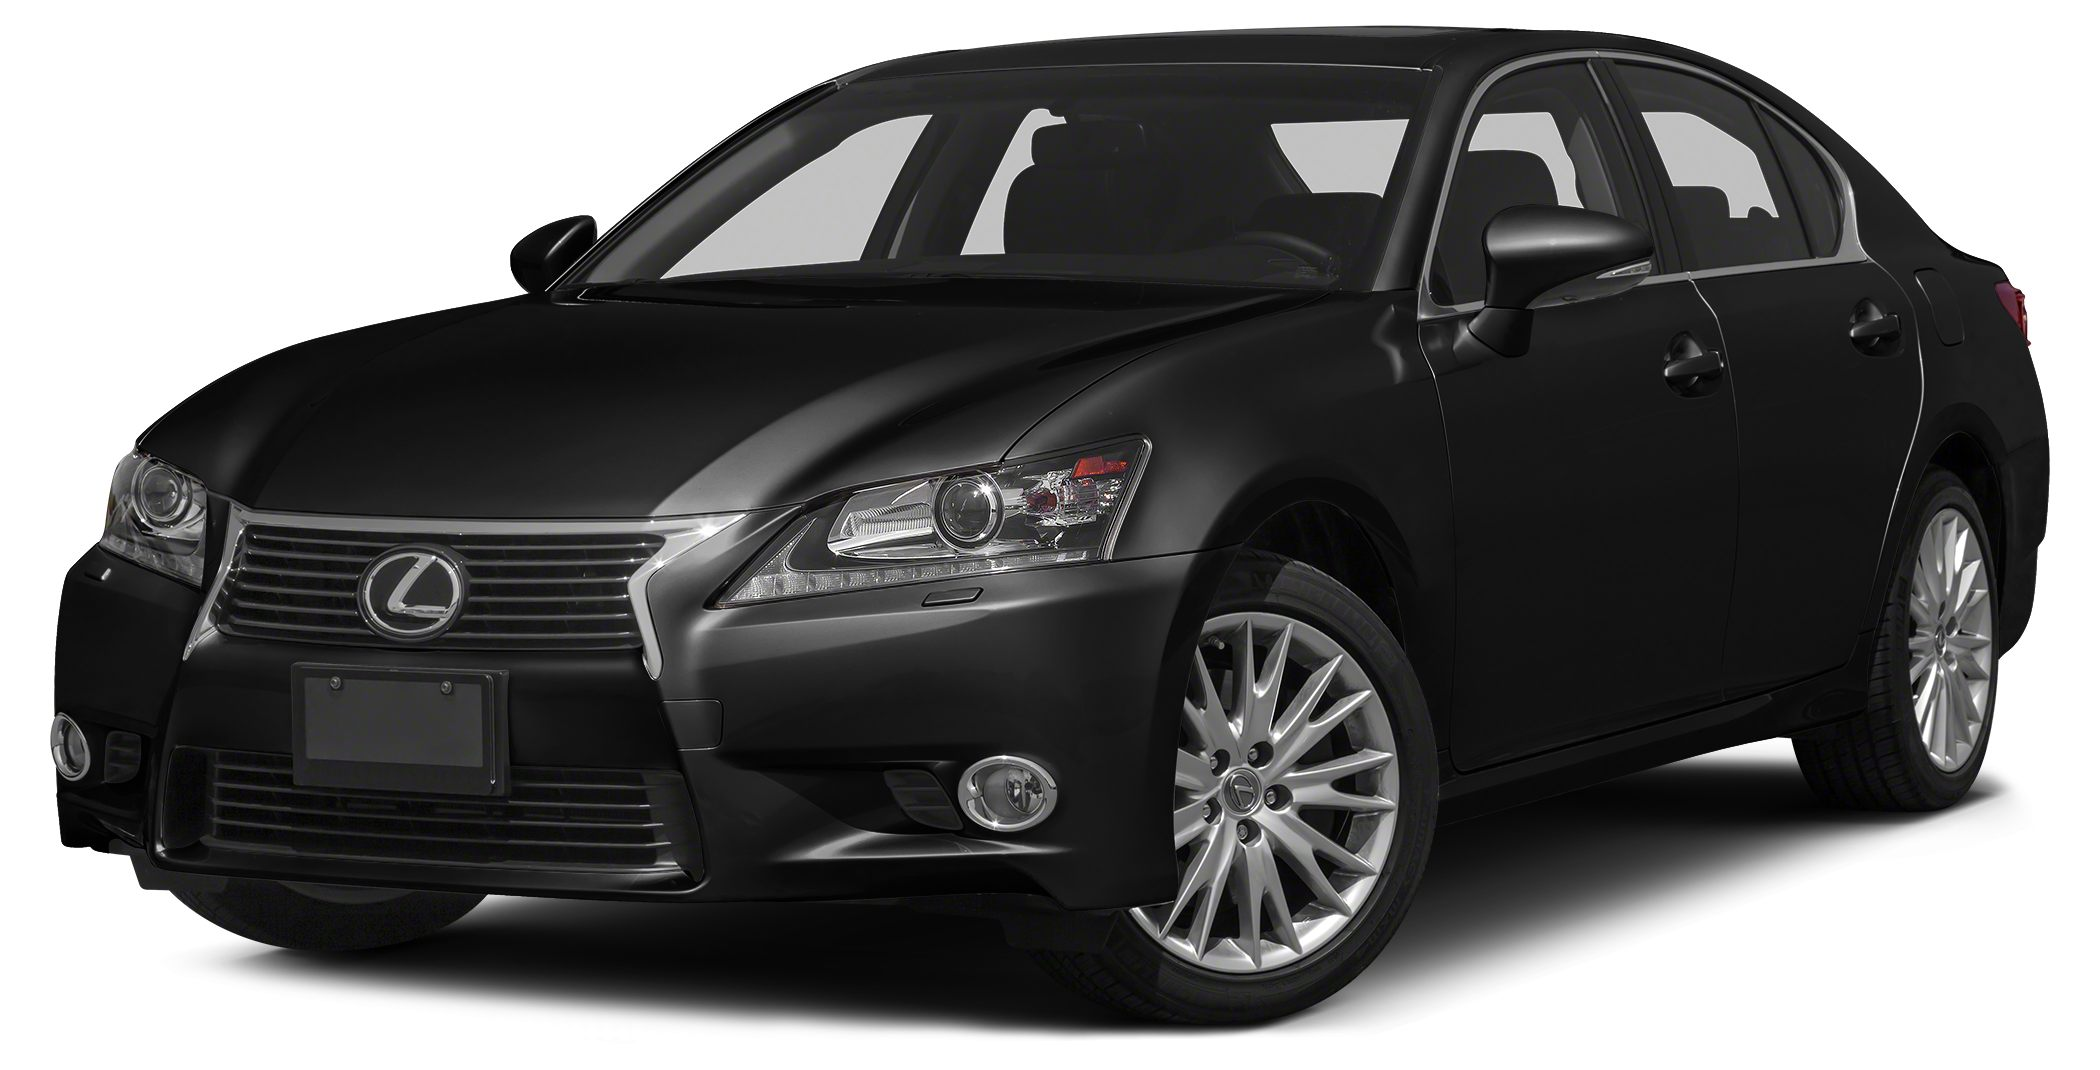 2014 Lexus GS 350 Base PREMIUM PACKAGEONLY 17K MILESLEXUS WARRANTYDEALER MAINTAINED1 OWN